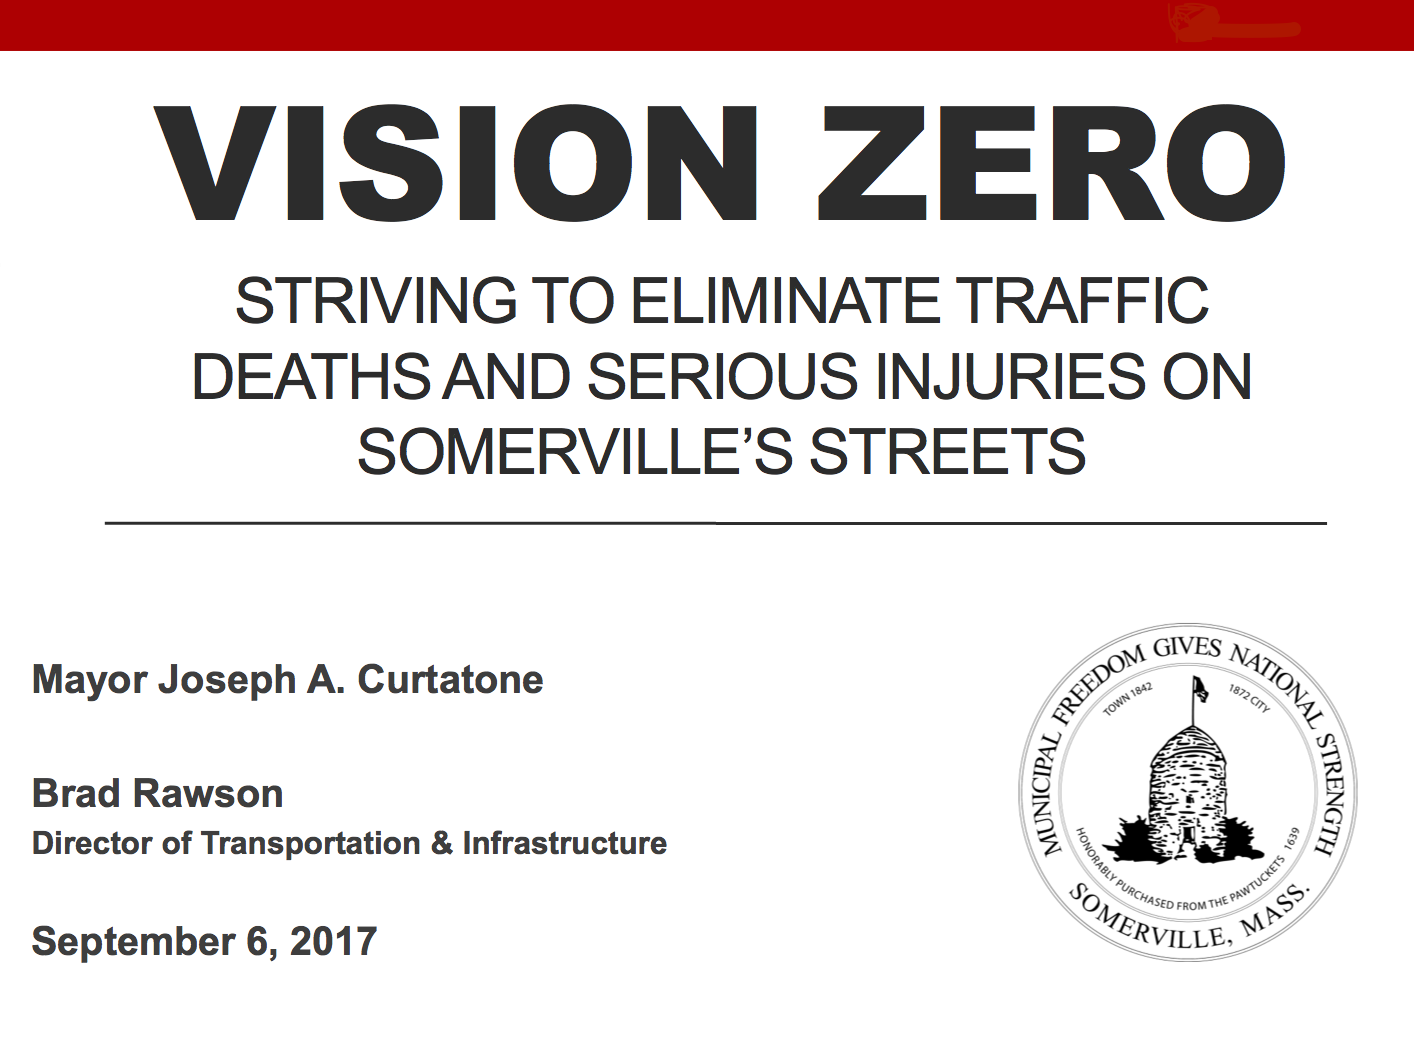 PDF preview links to Mayor Curtatone's Vision Zero presentation